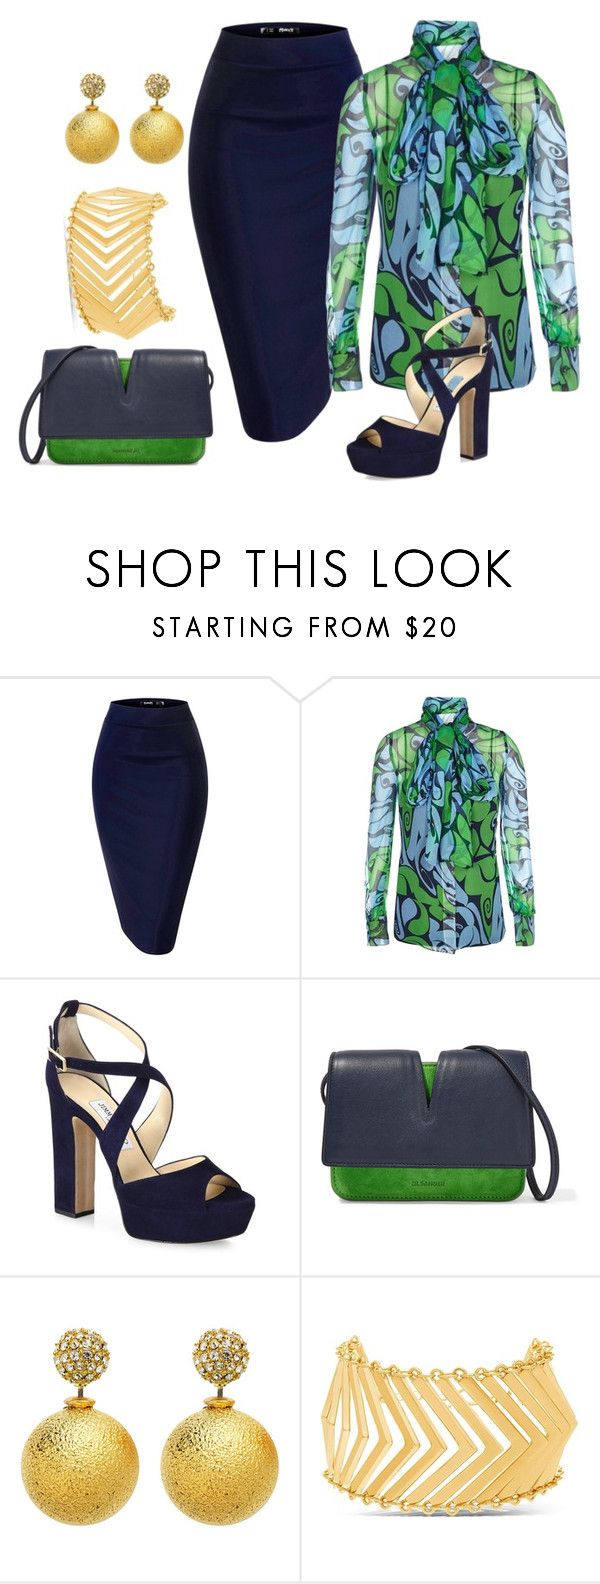 """""""MY SPACE"""" by polishedplus ❤ liked on Polyvore featuring Miu Miu, Jimmy Choo, Jil Sander and Steve Madden"""